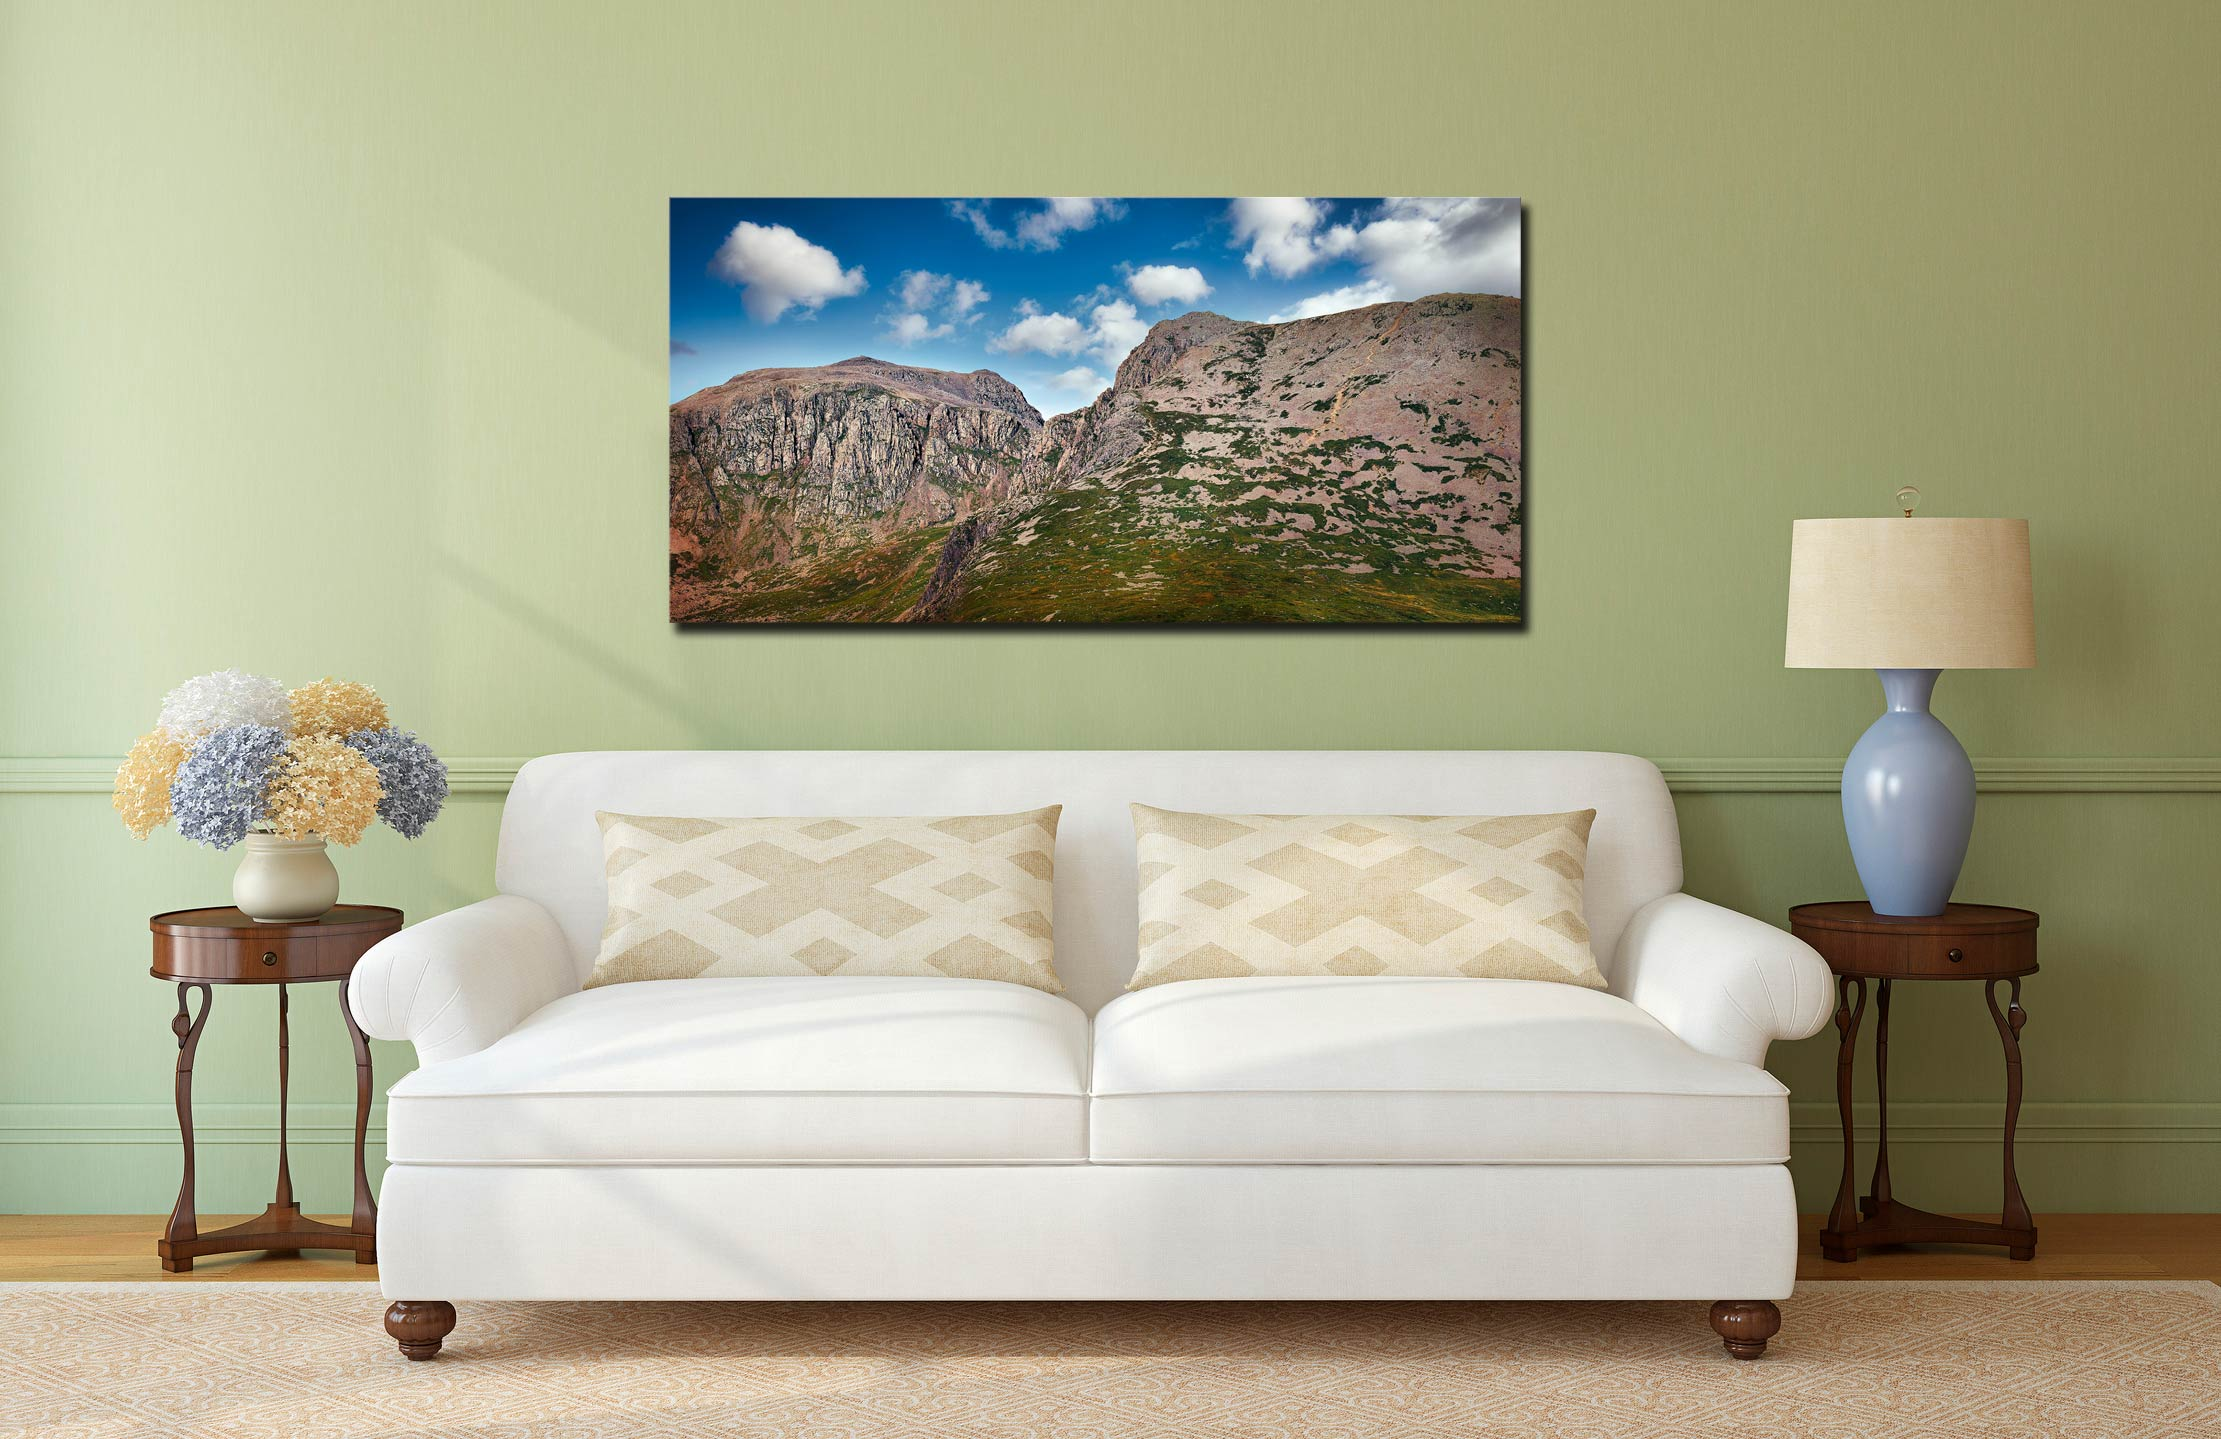 Sca Fell Pikes - Canvas Print on Wall